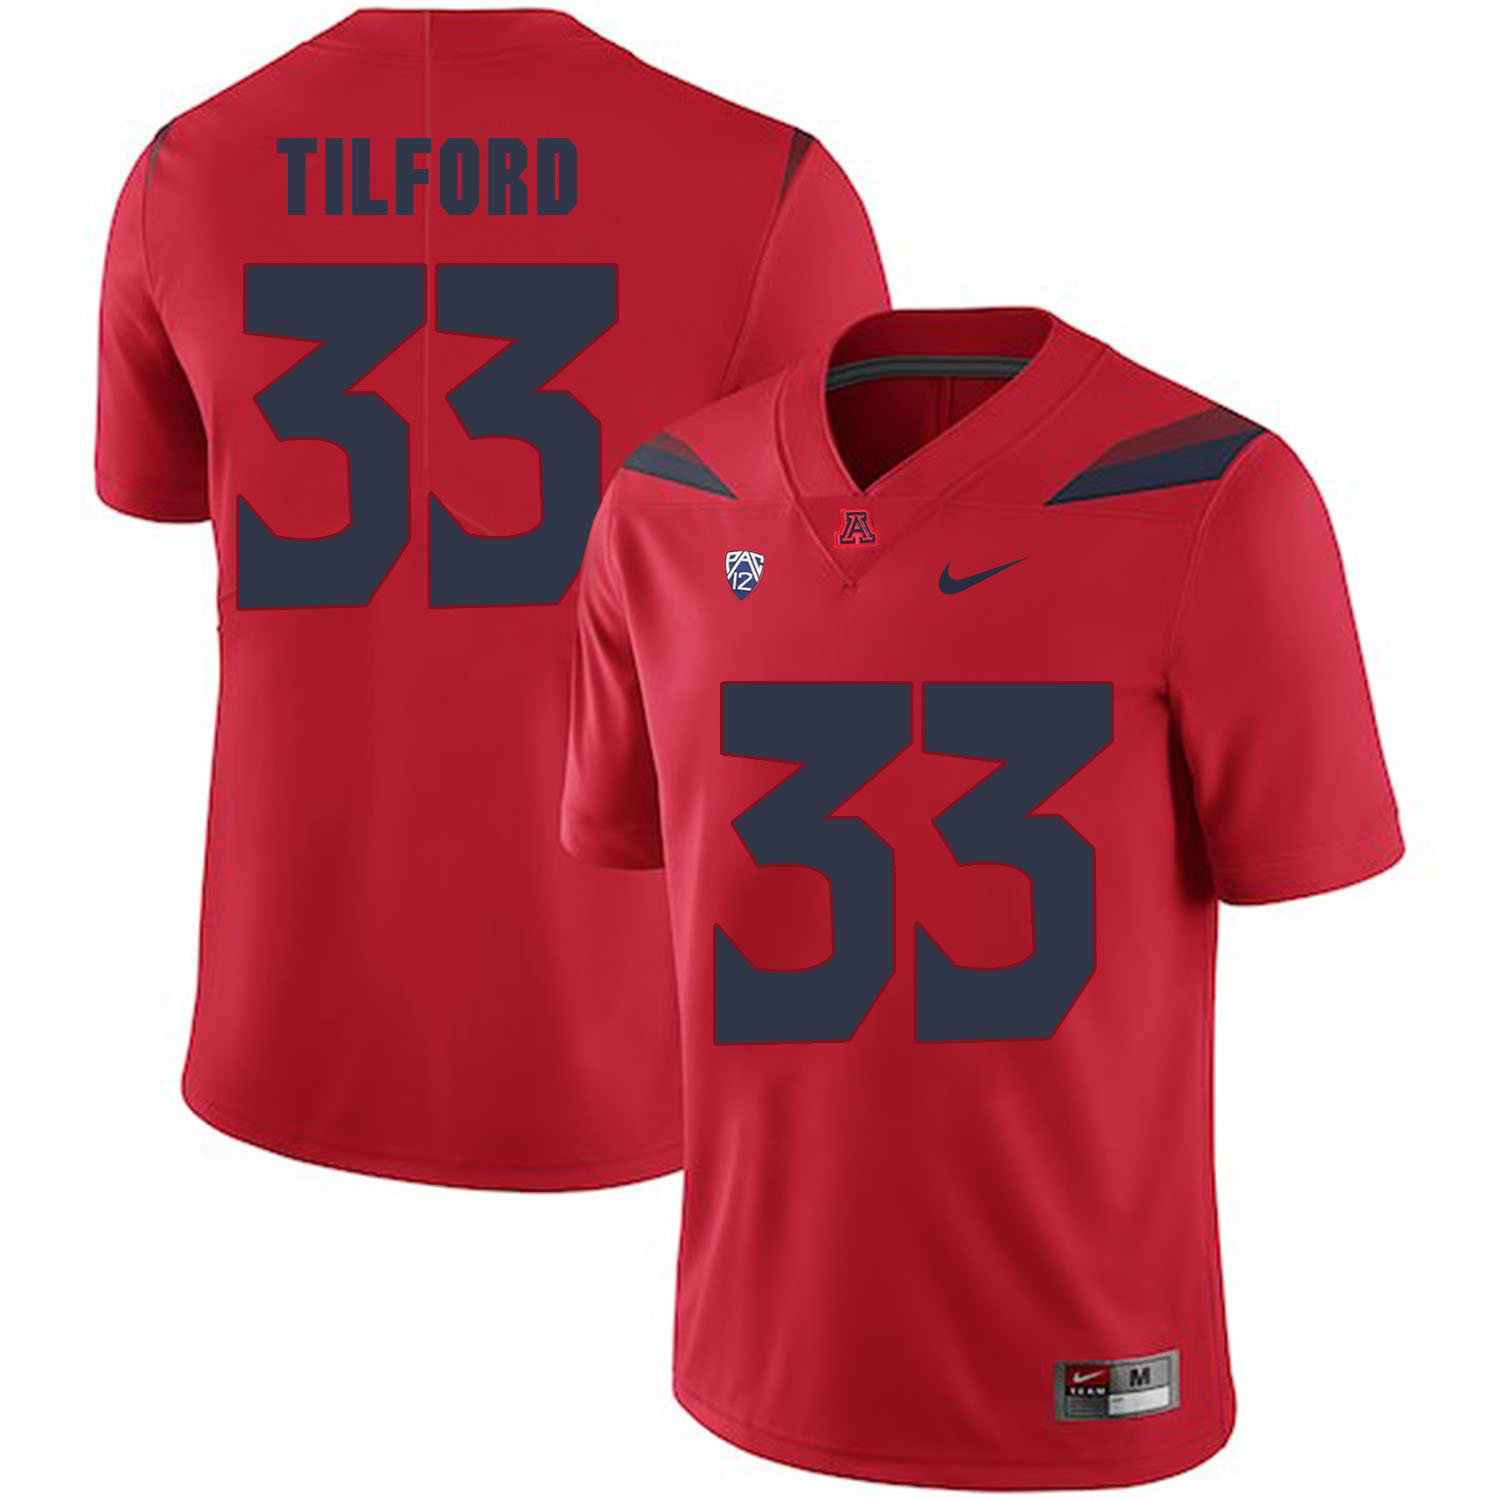 Arizona Wildcats 33 Nathan Tilford Red College Football Jersey